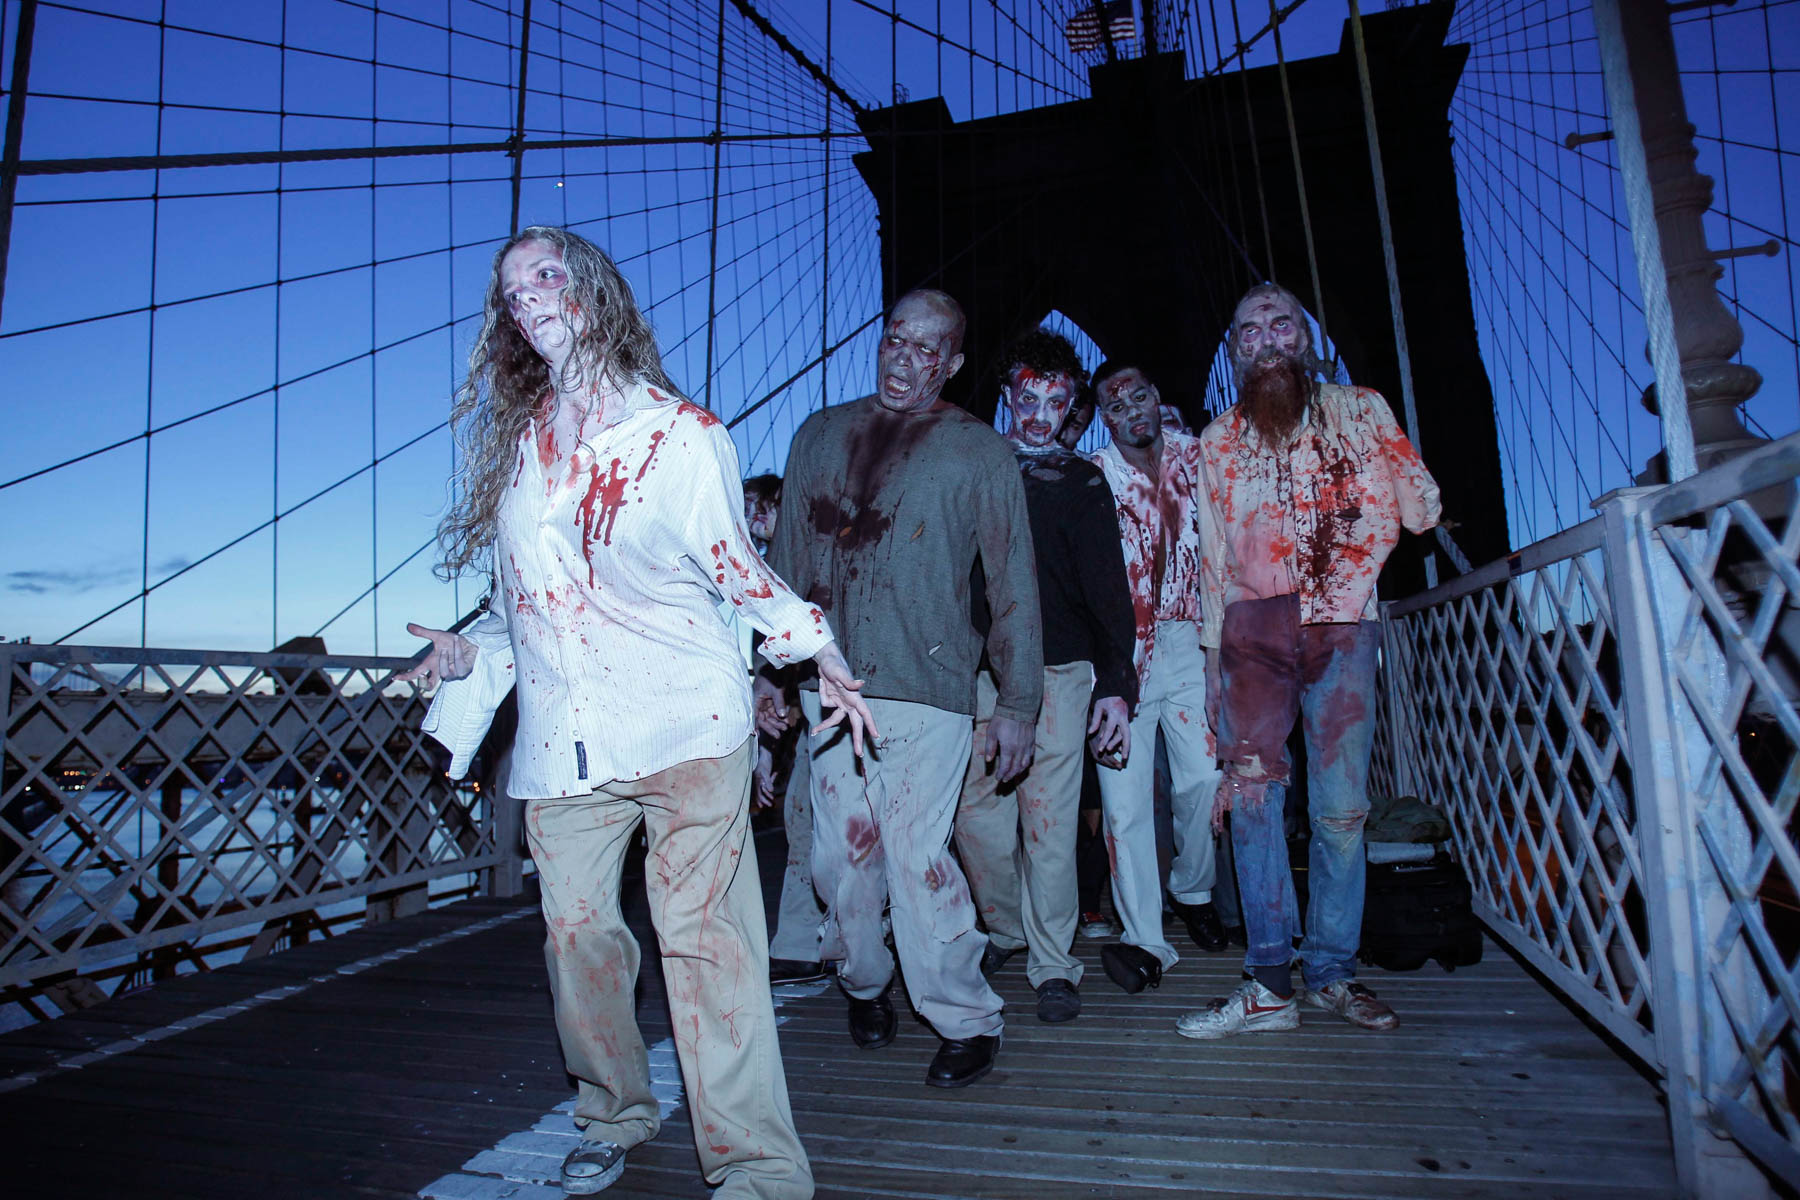 People dressed as zombies walking on bridge (© AP Images)